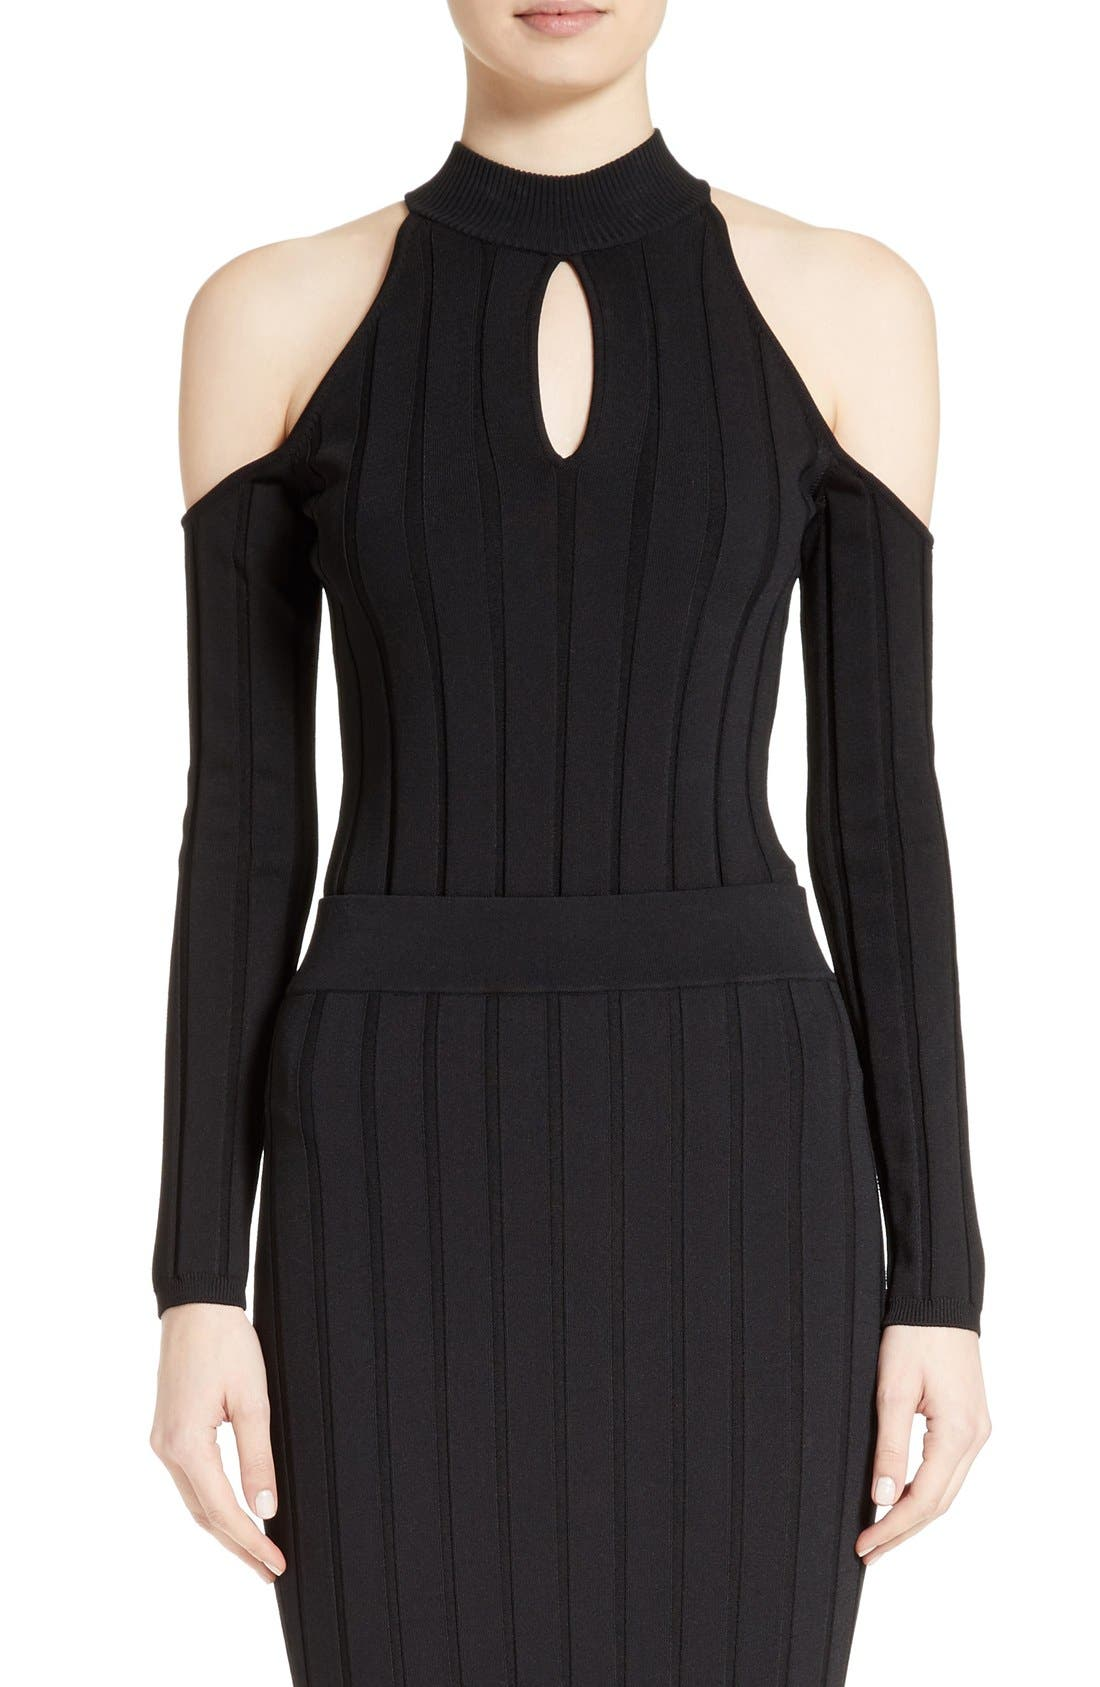 JONATHAN SIMKHAI Cold Shoulder Rib Knit Bodysuit